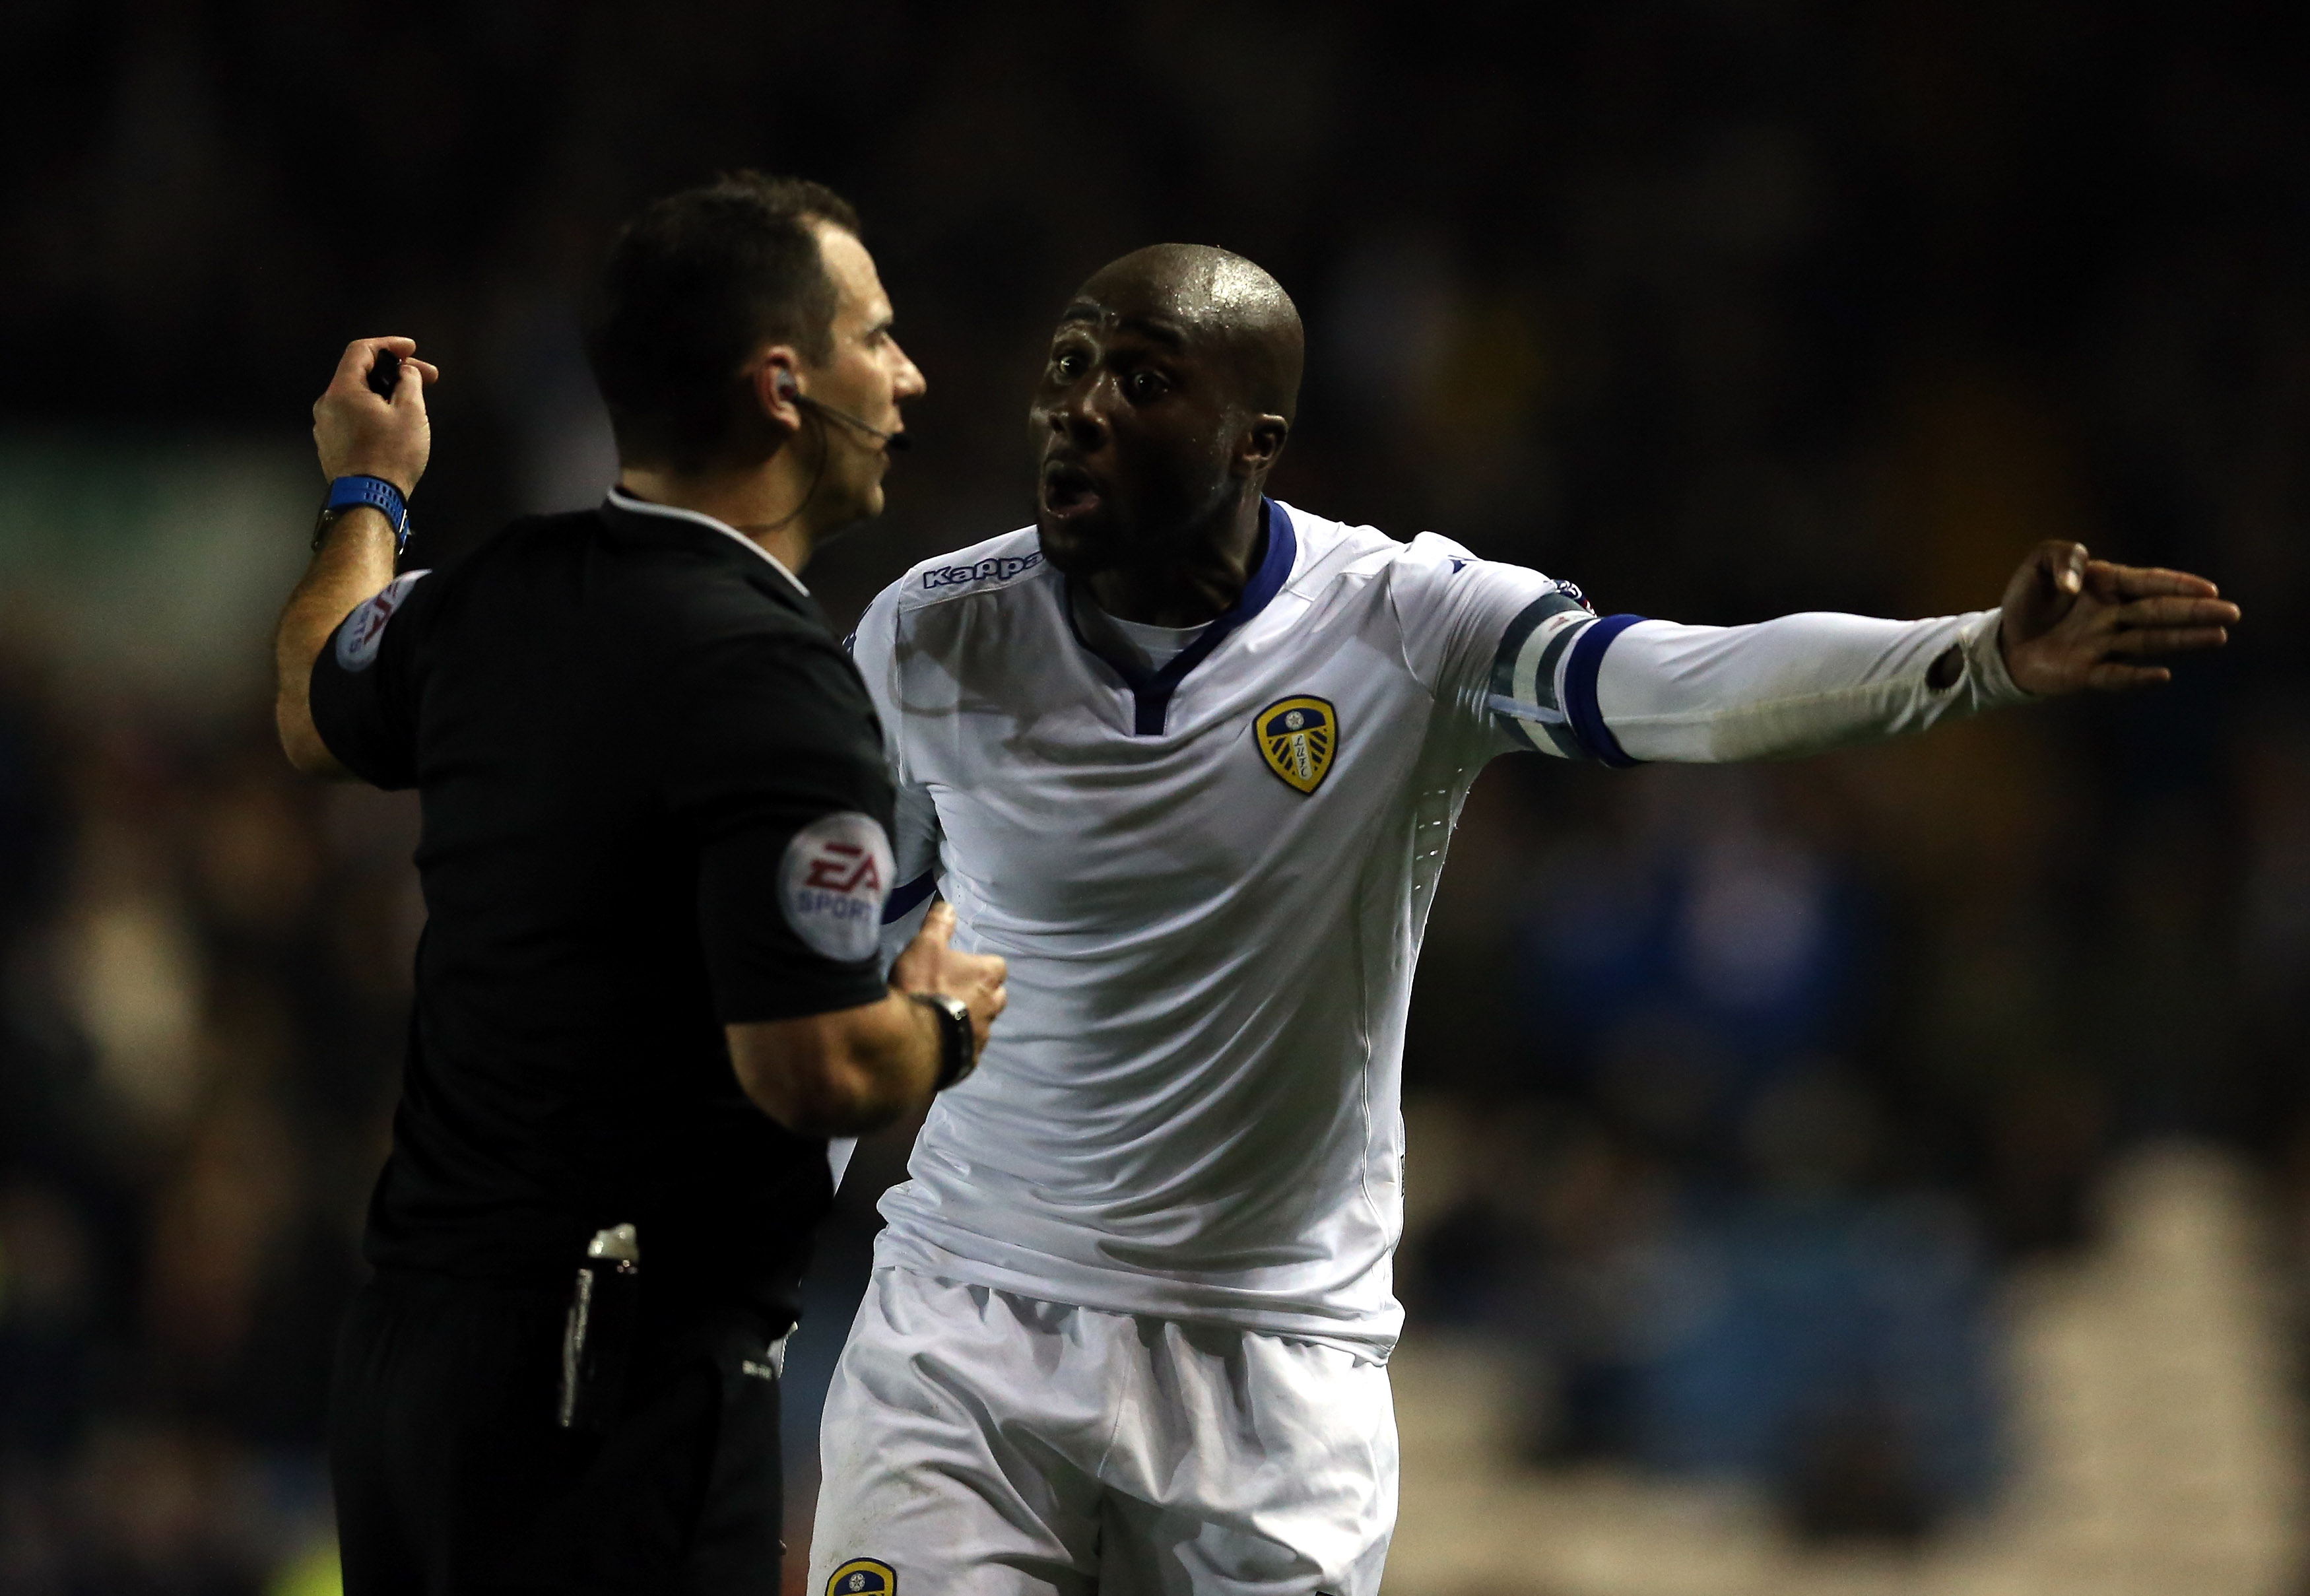 Sol Bamba was the captain in 2015/16, will he repeat in the role?